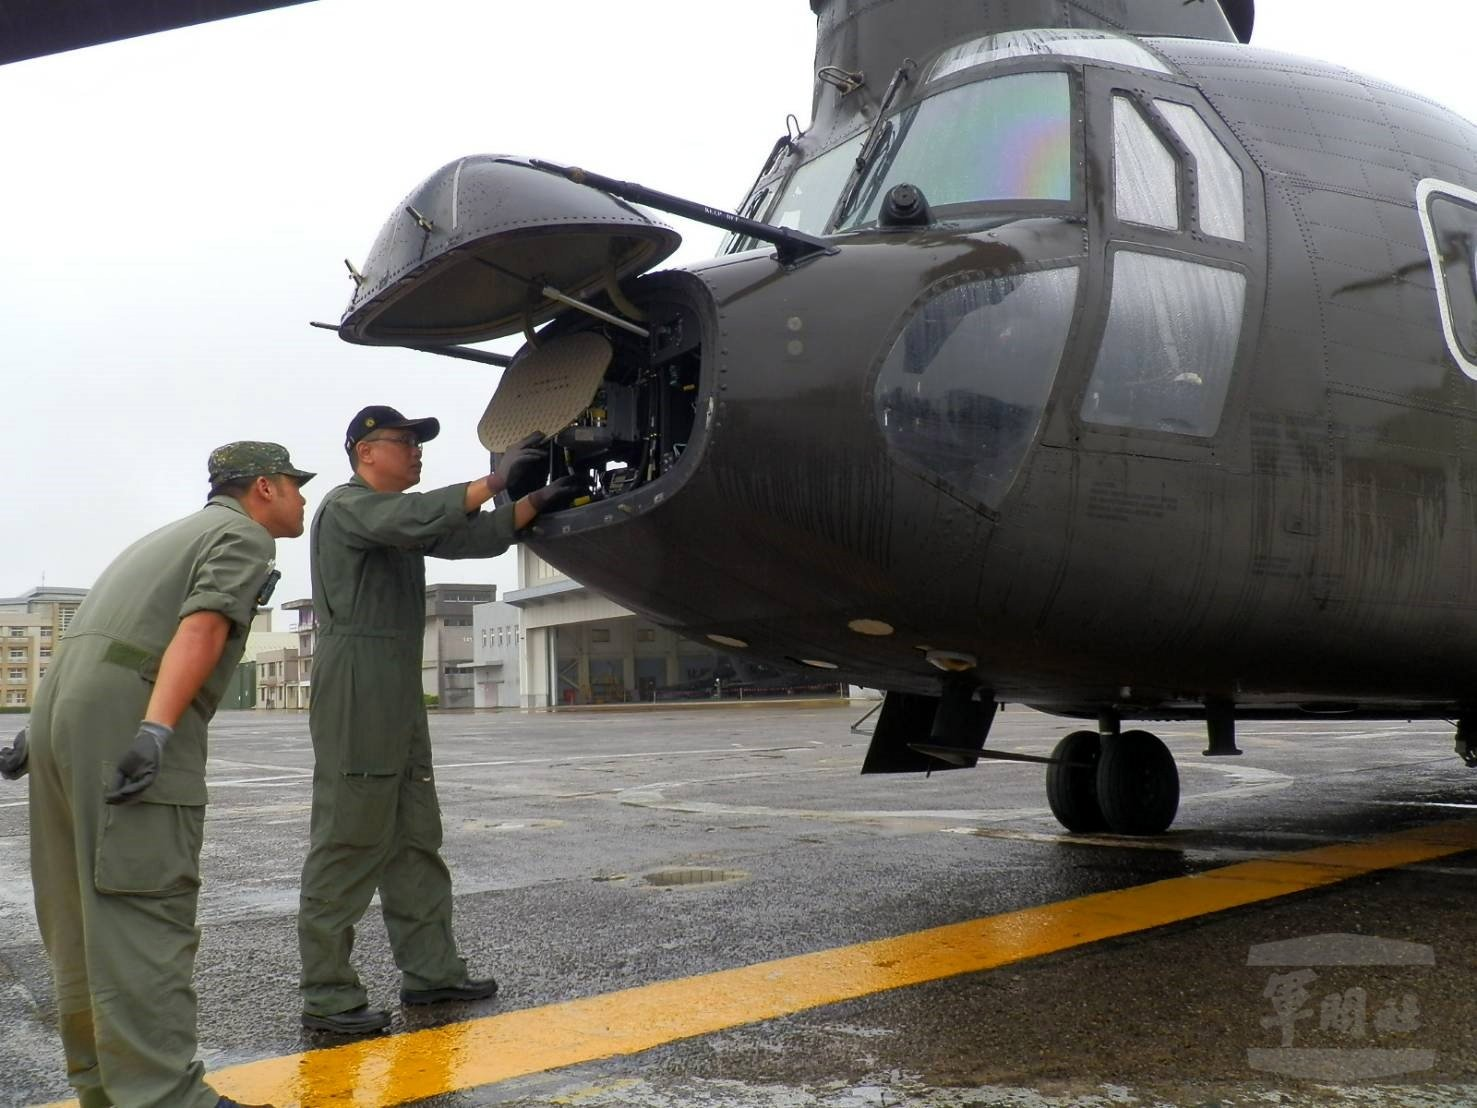 Taiwan Army mechanics carry out maintenance ona military plane at an undisclosed military base in Taiwan, Oct. 8,2020. (Photo byTaiwan Military News Agency via EPA)